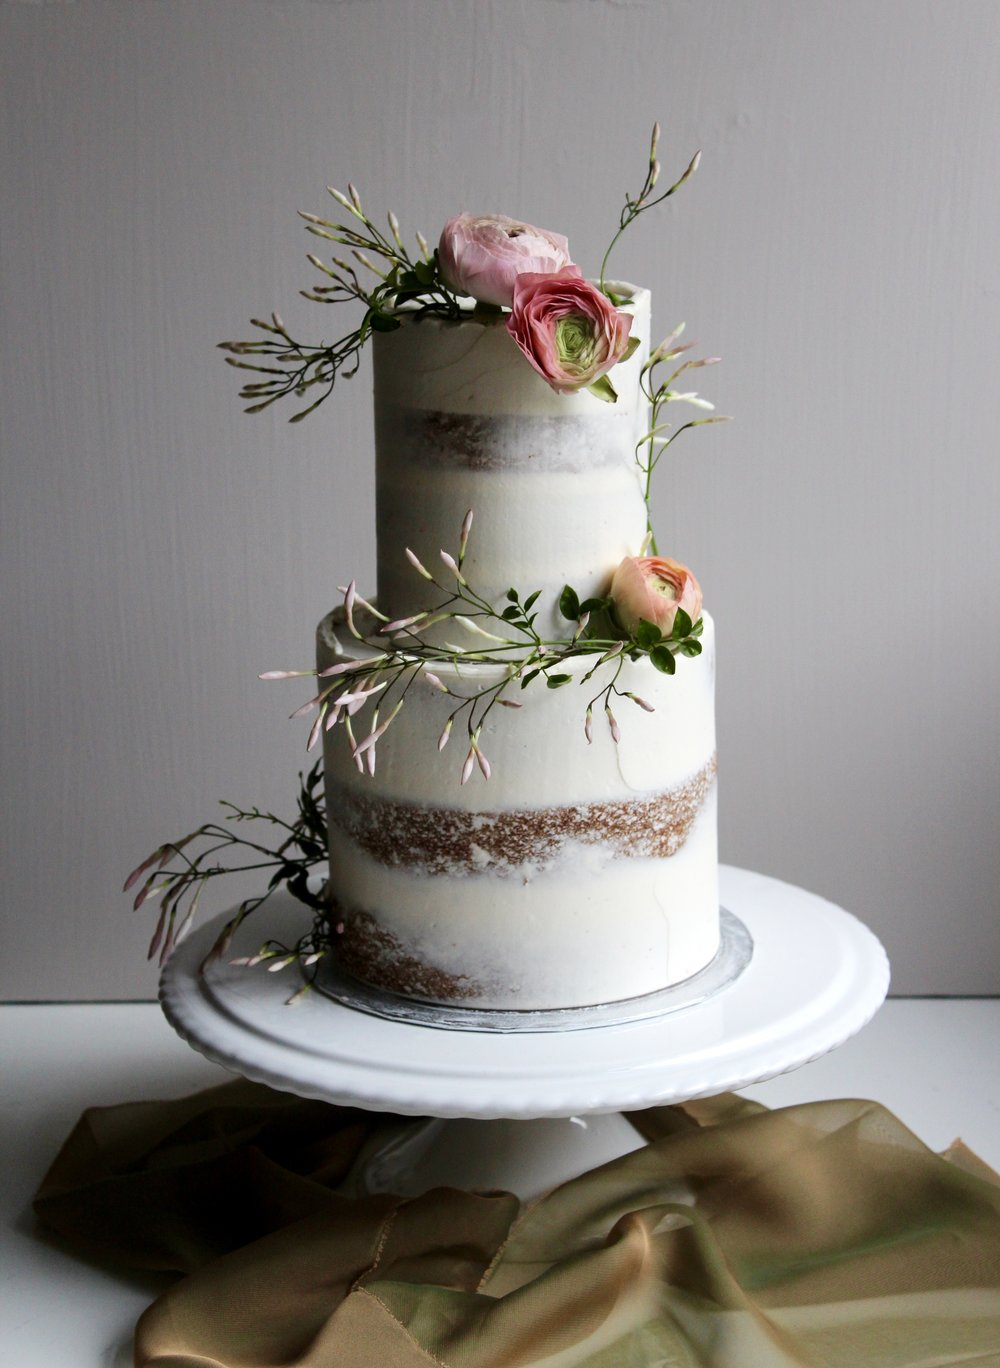 Minimalist, Simple Semi-Naked Wedding Cake by Yolk www.cakesbyyolk.com